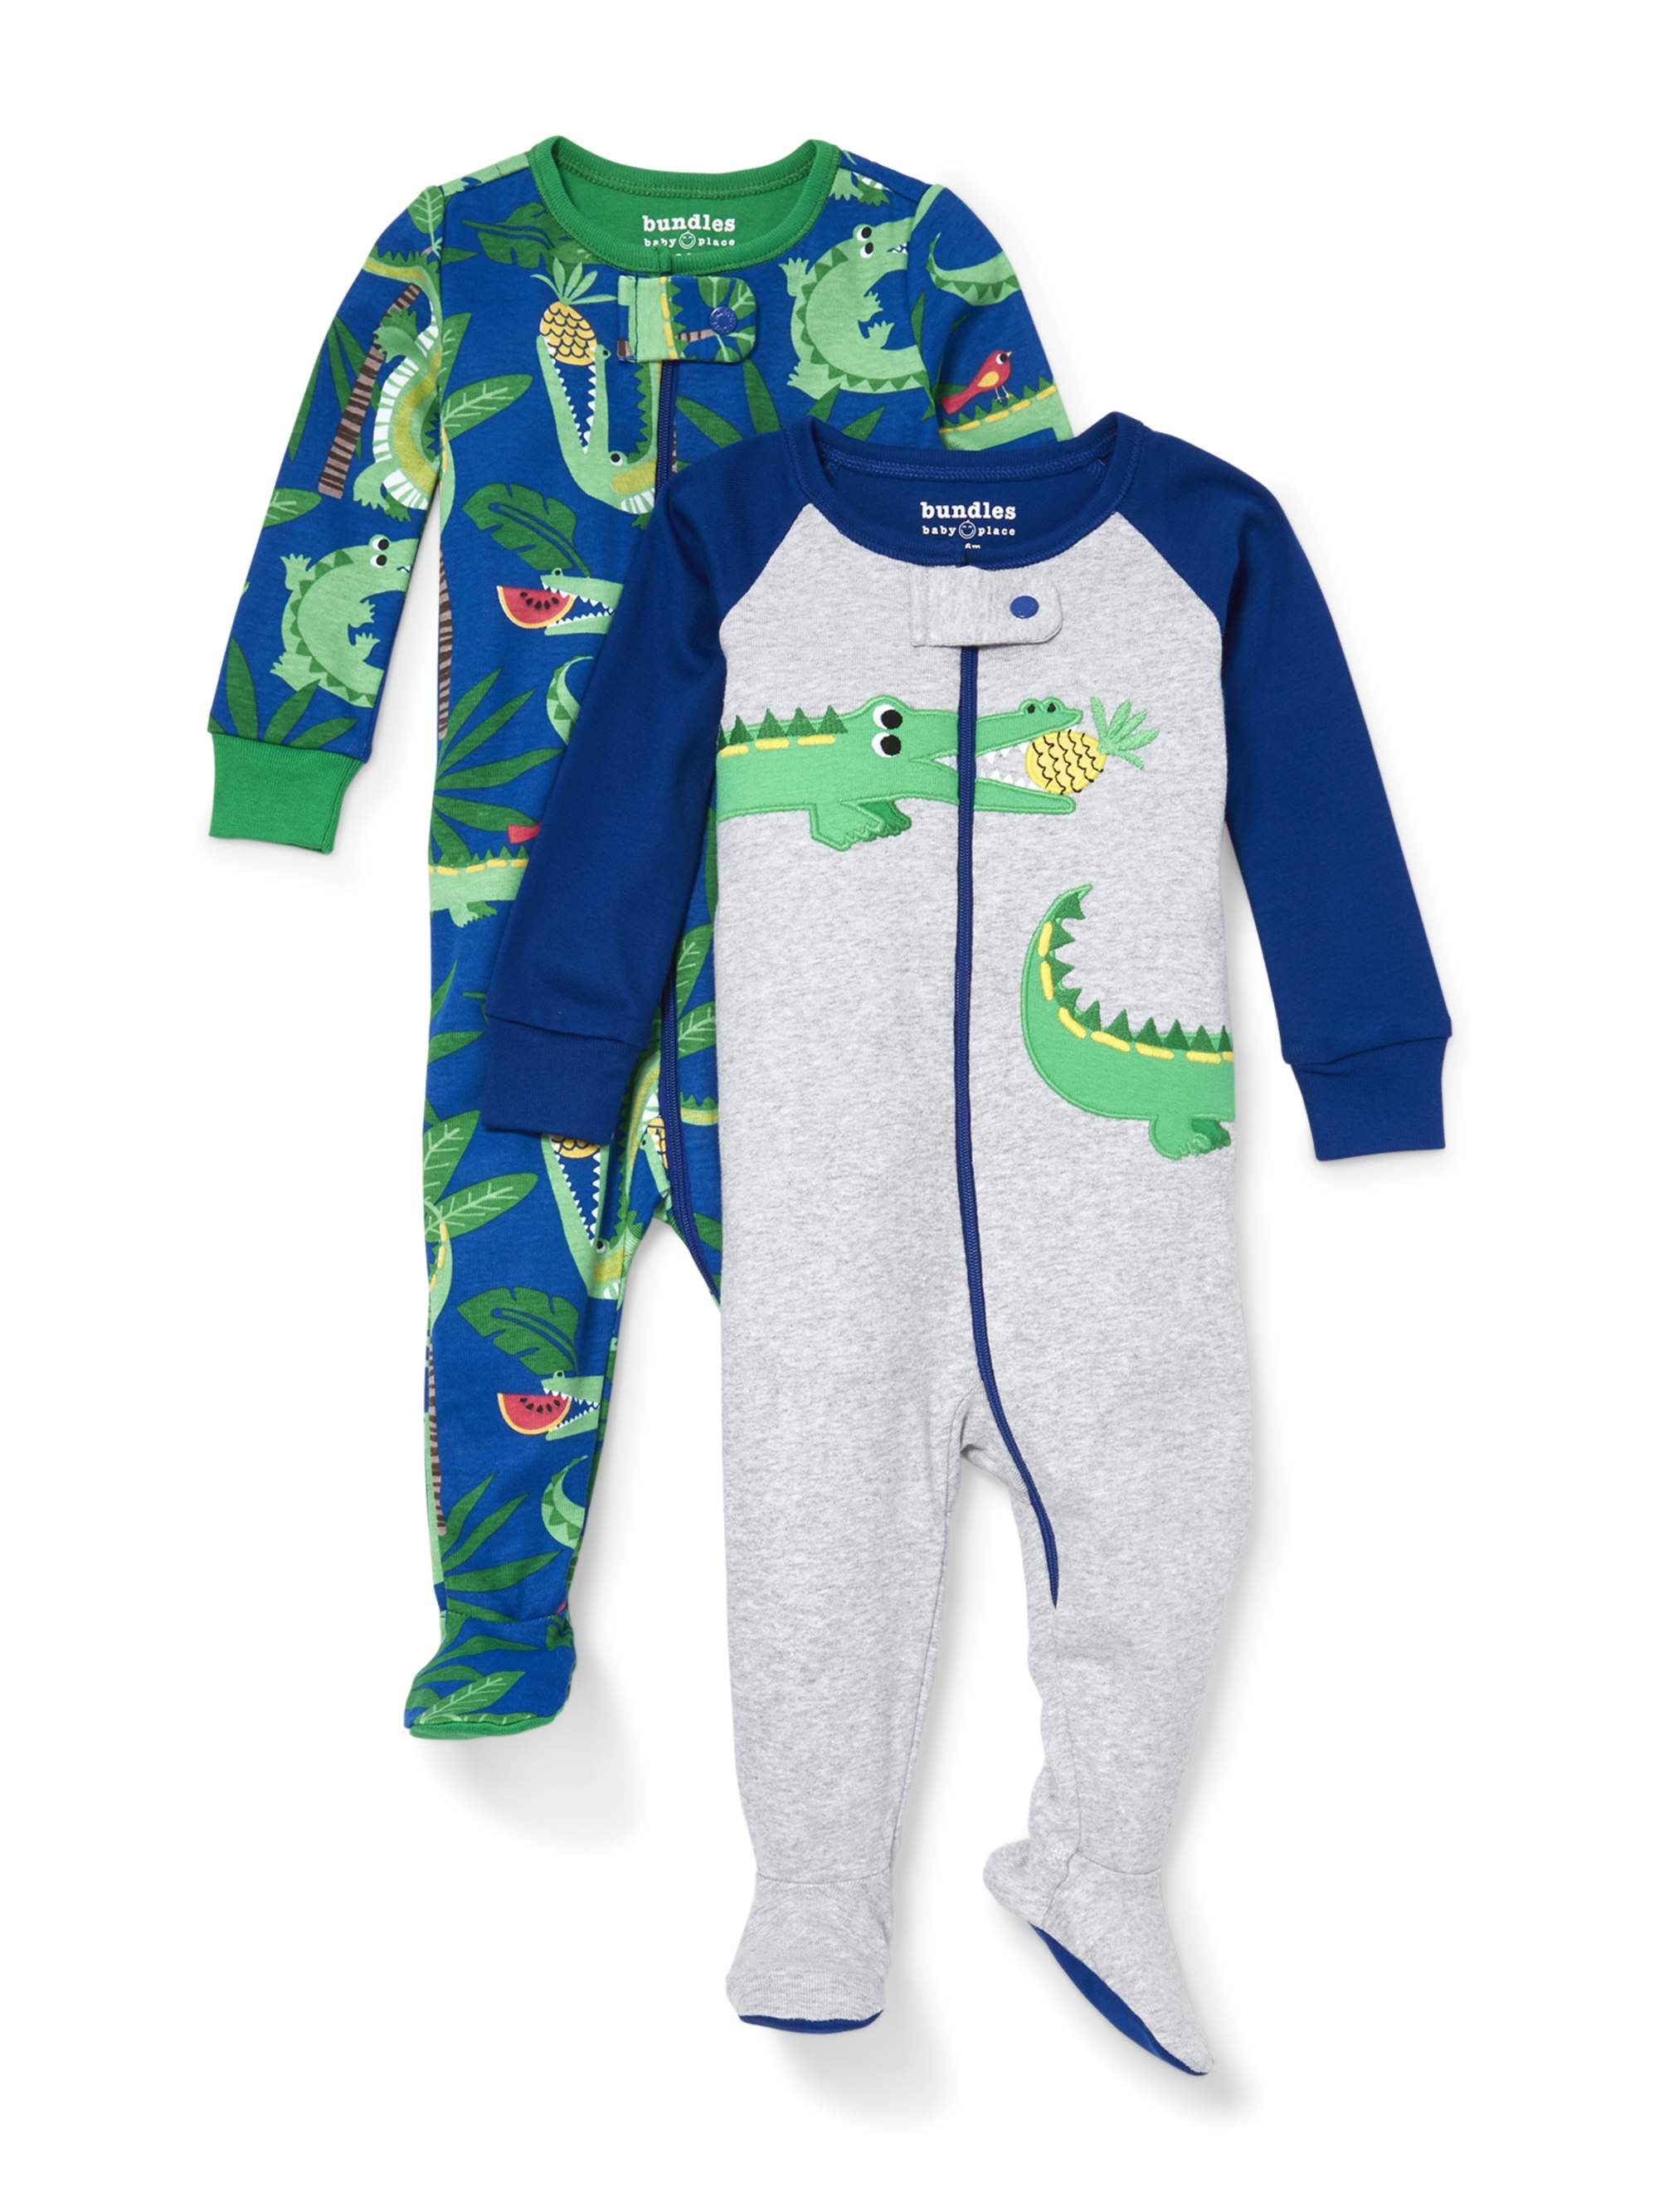 Long Sleeve Snug-Fit Footed Stretchie Pajamas, 2pk (Baby Boys & Toddler Boys)